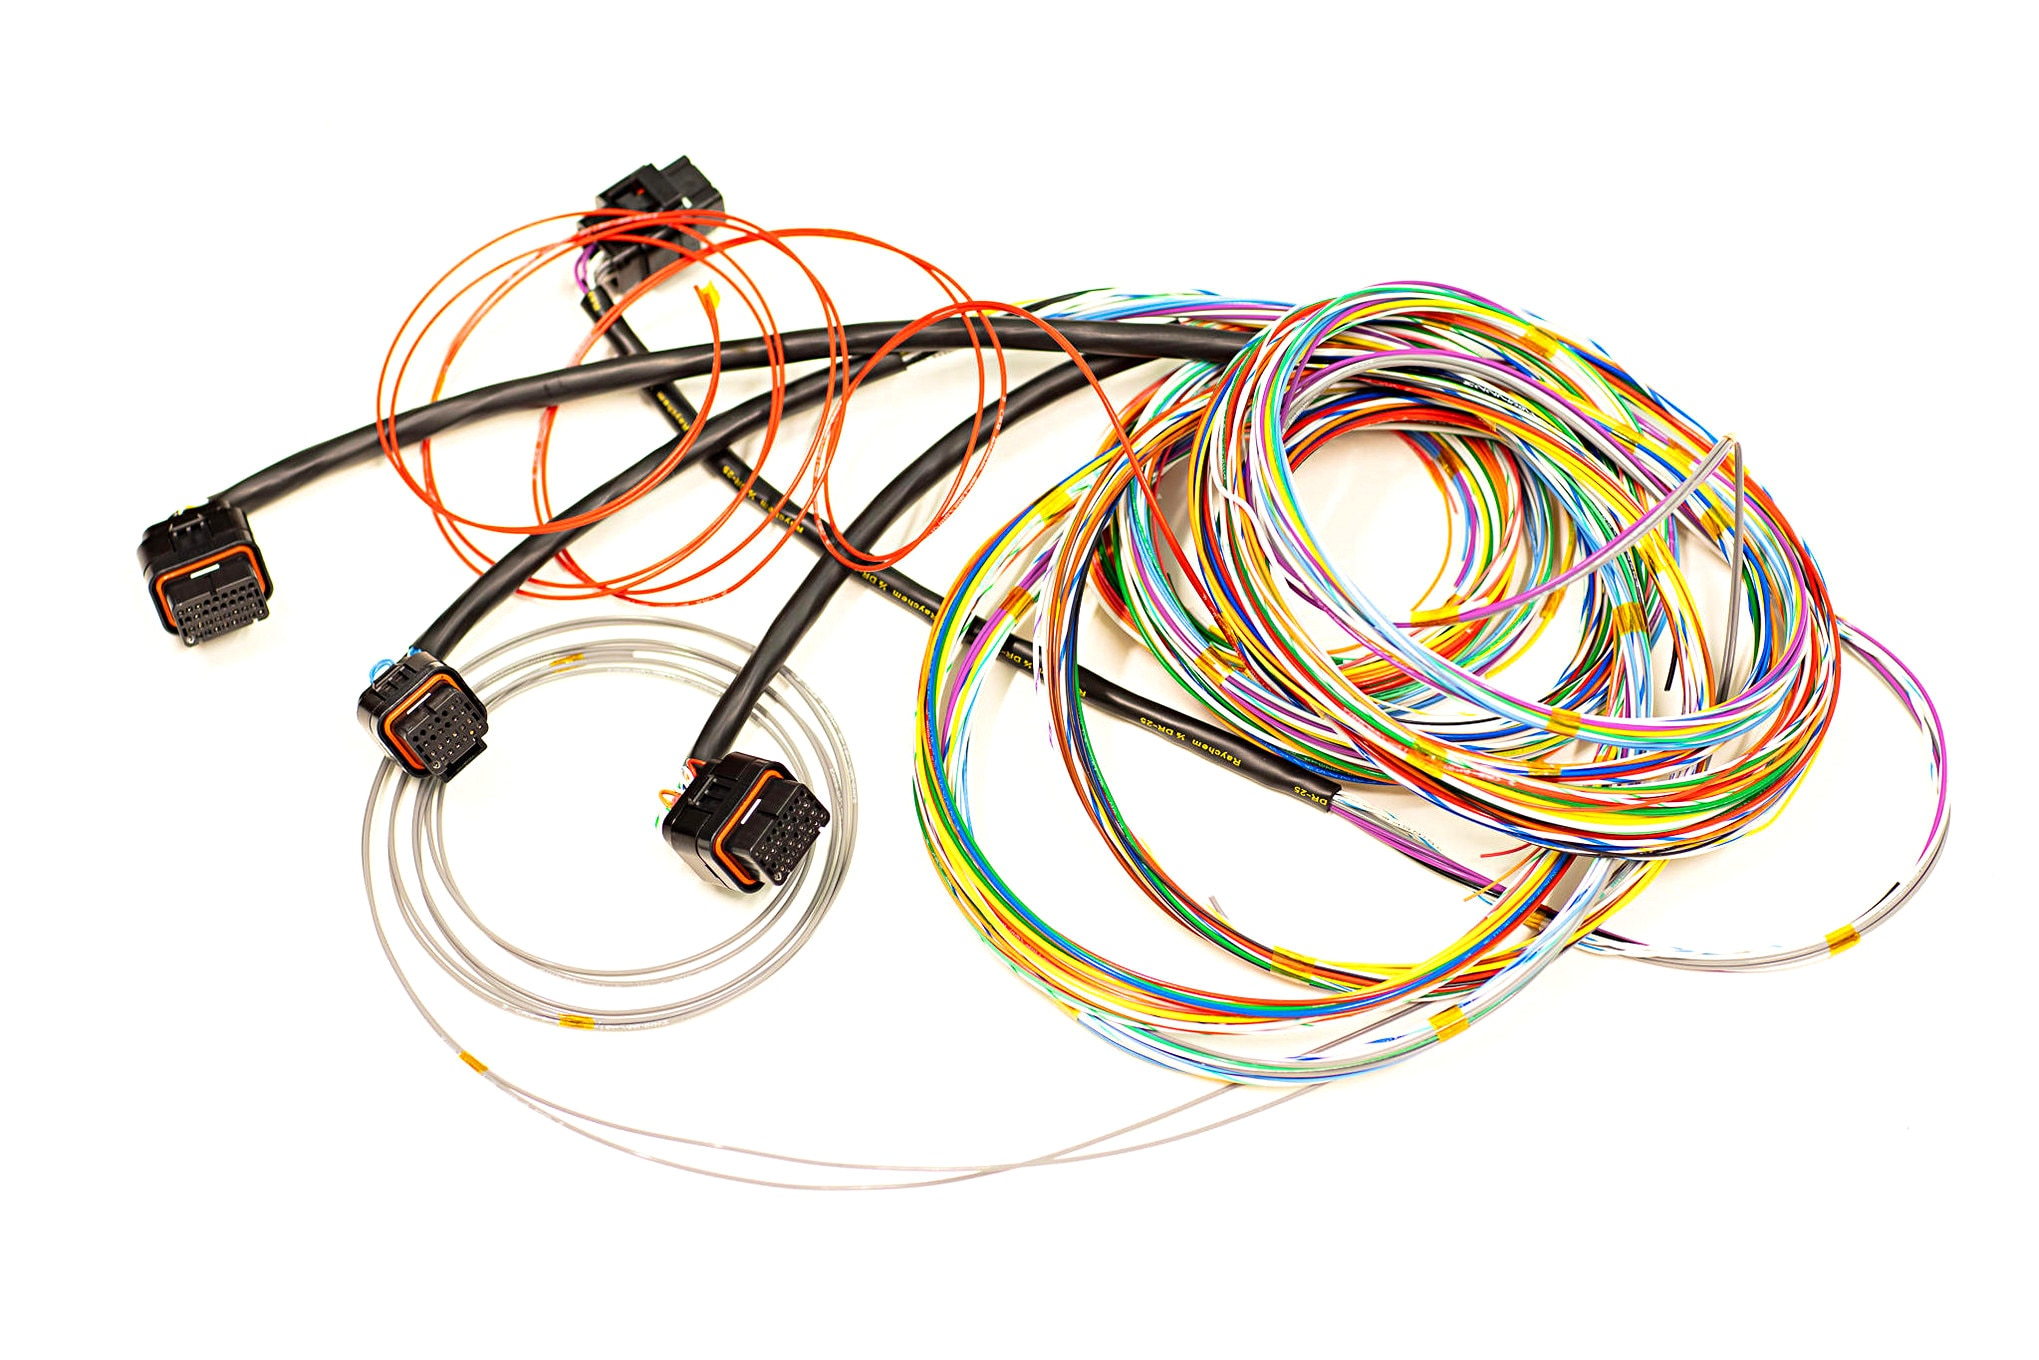 hight resolution of aero wiring harness wiring diagram sortautomotive mil spec wiring can improve your cars electrical system aero